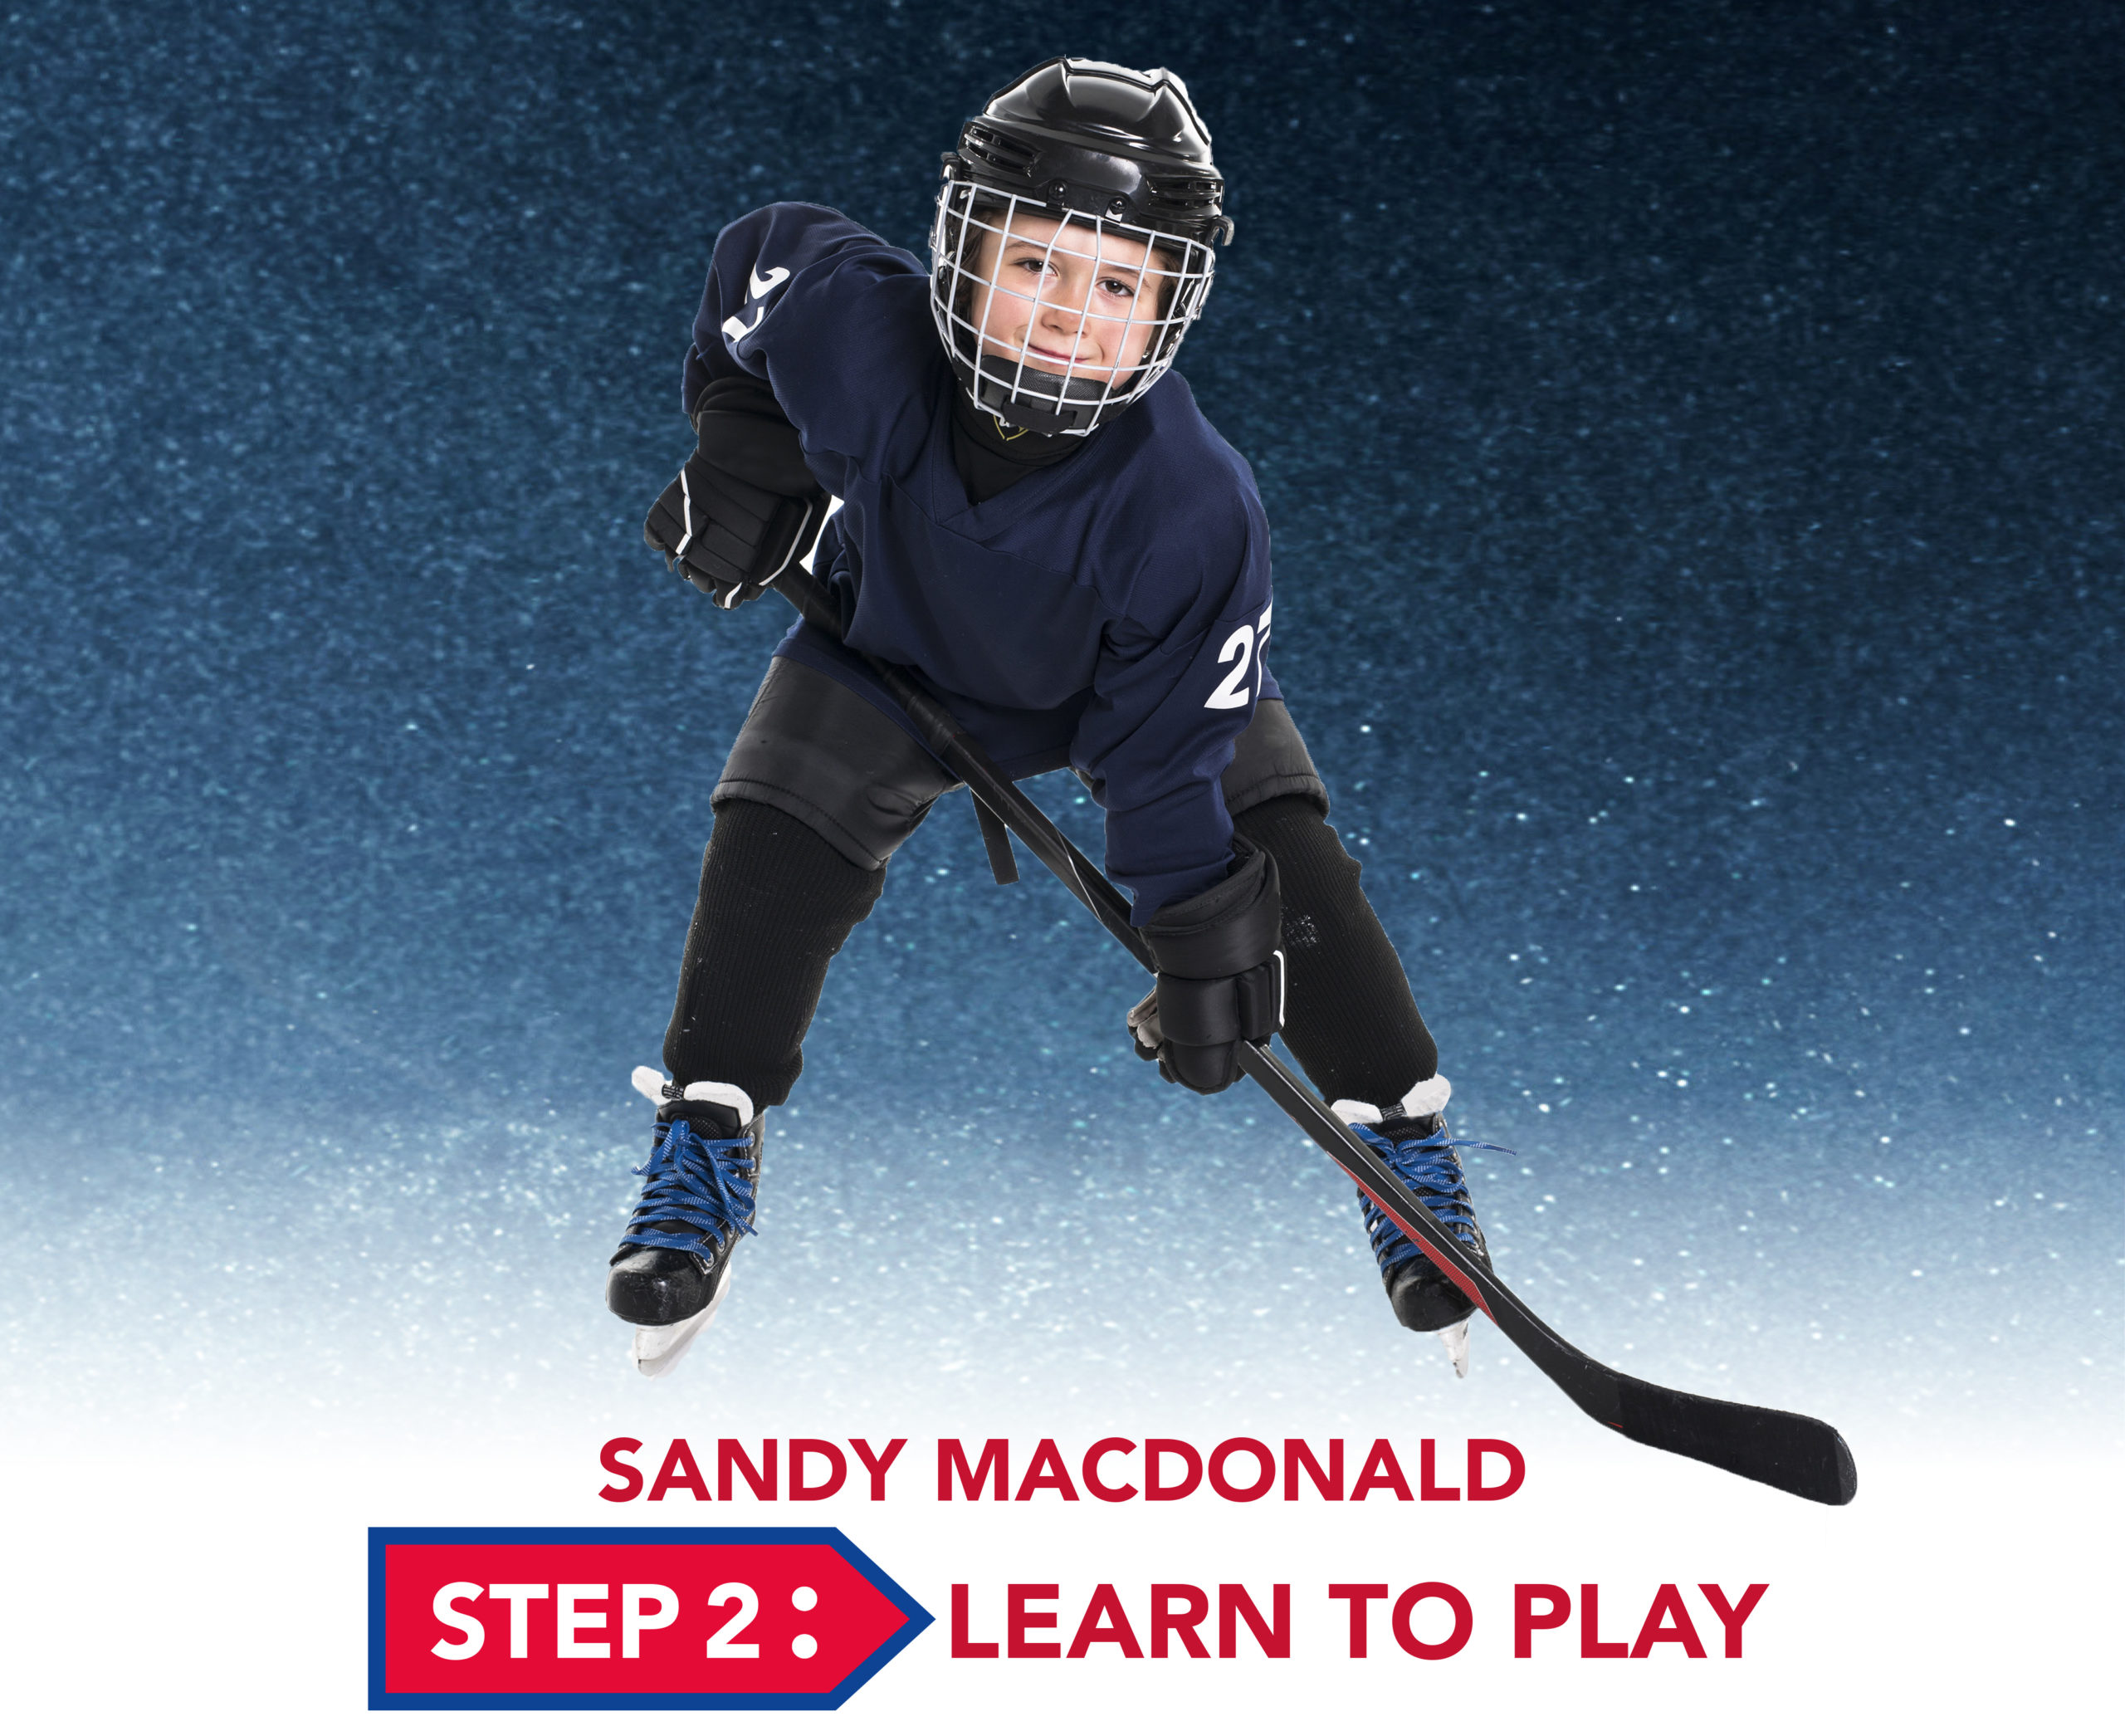 Sandy MacDonald Step 2: Learn to Play